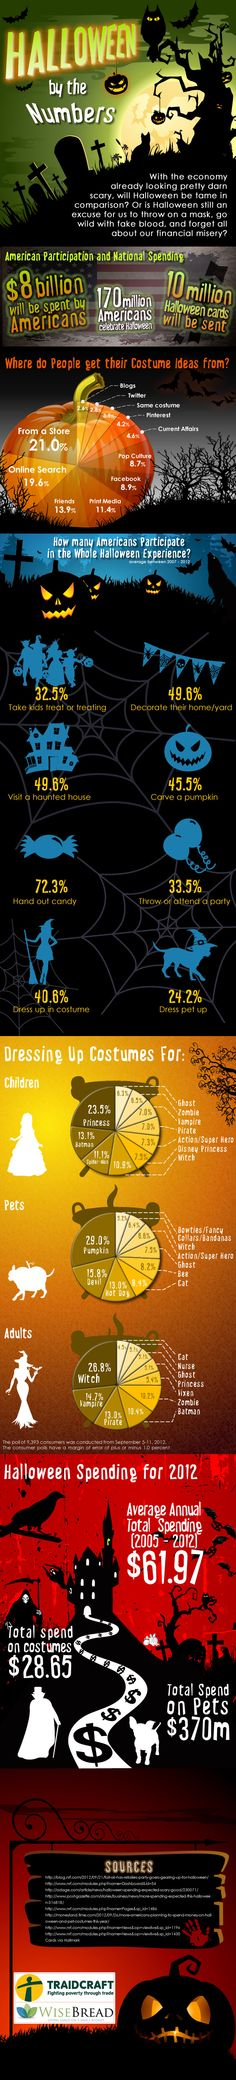 VERY Interesting Halloween facts!!! Print now, read later...